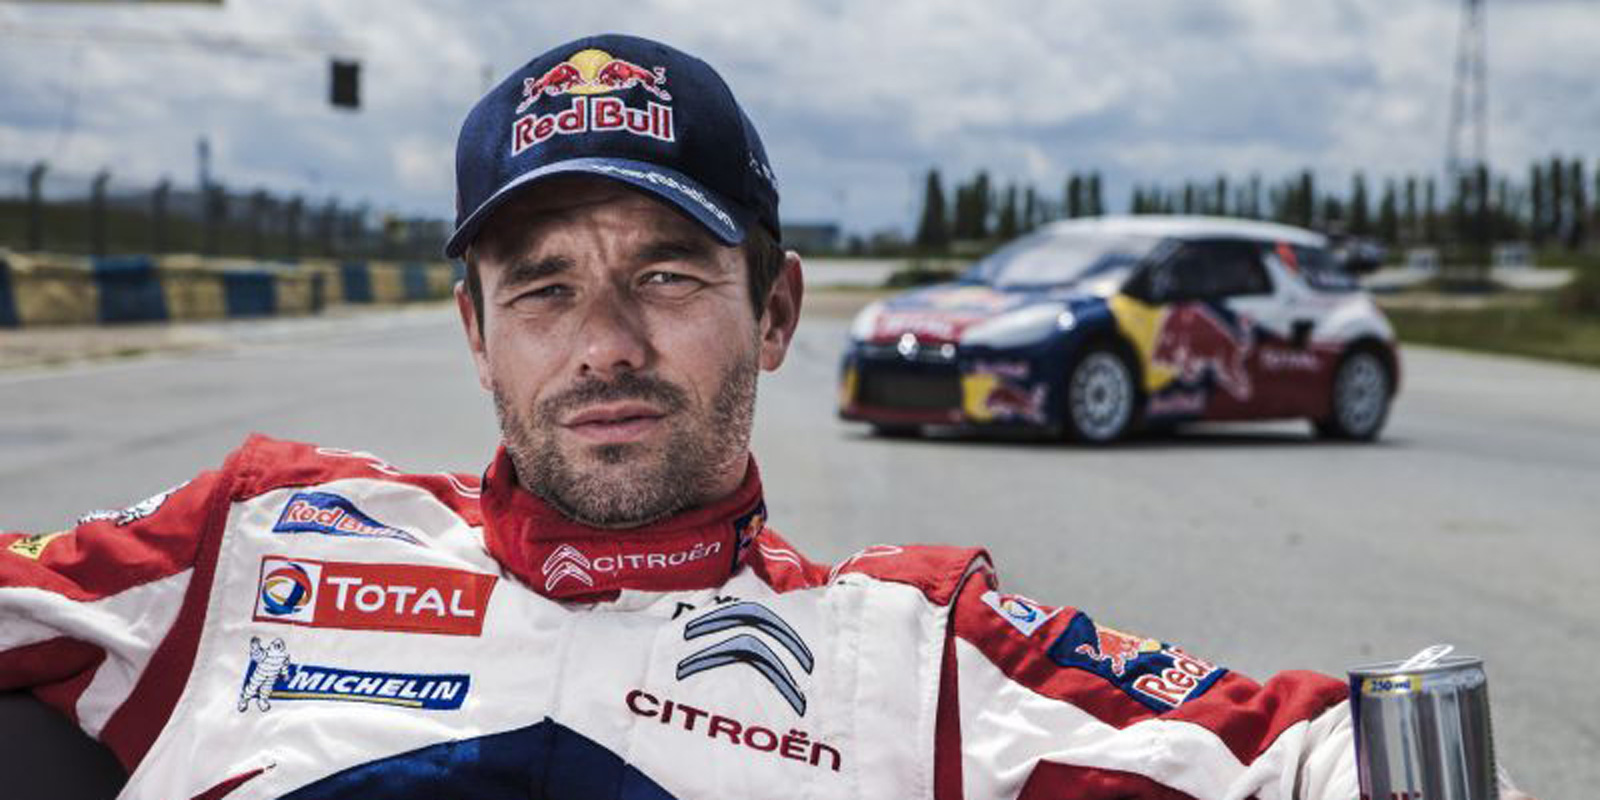 une attraction sebastien loeb au futuroscope. Black Bedroom Furniture Sets. Home Design Ideas